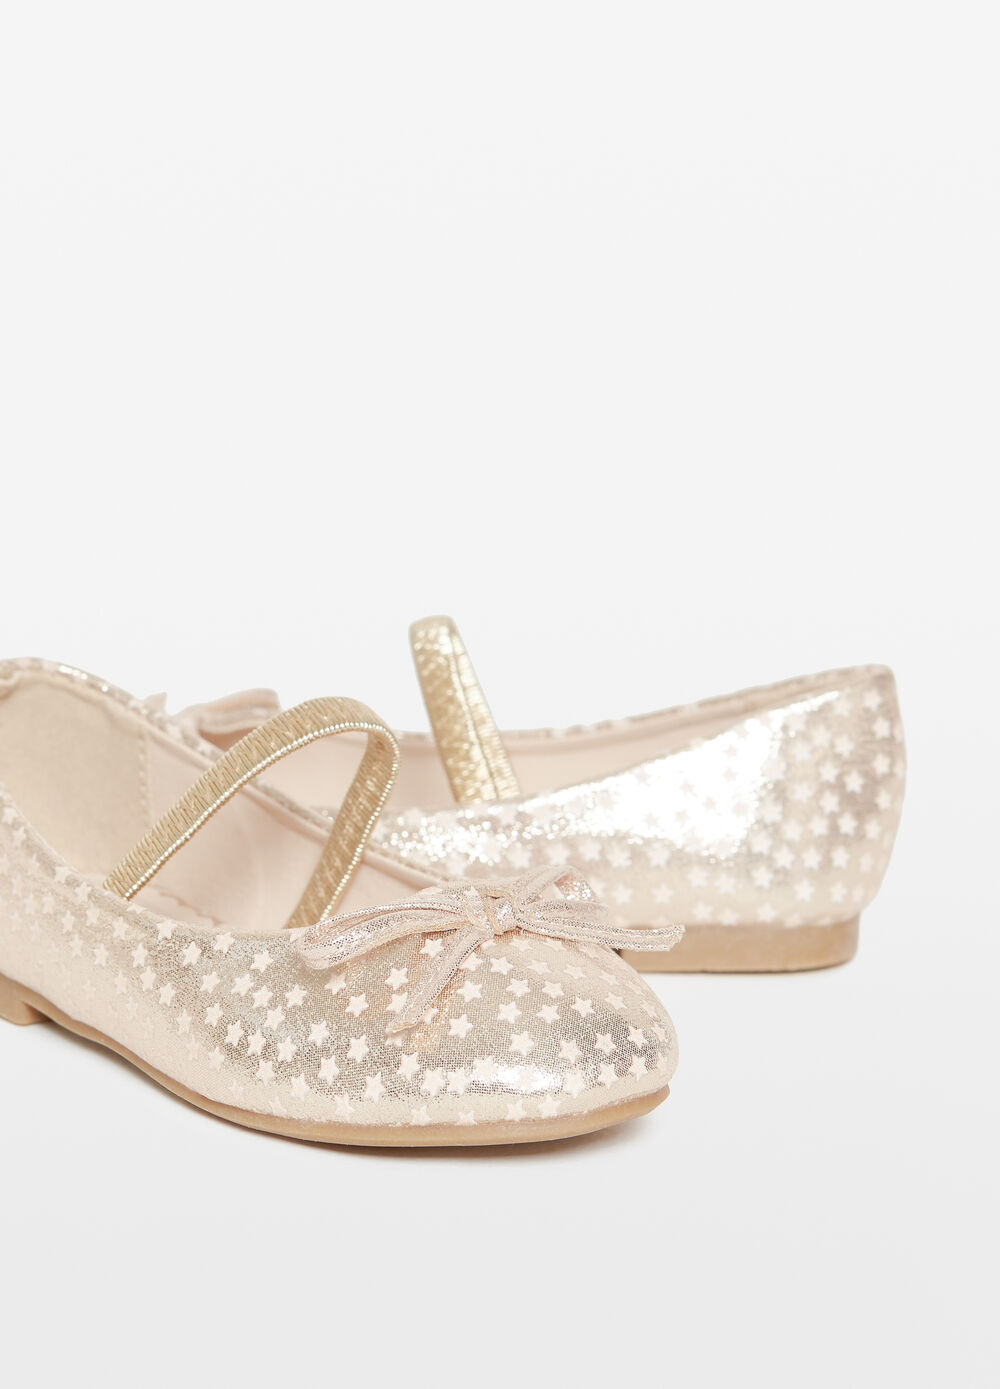 Glitter flats with star pattern